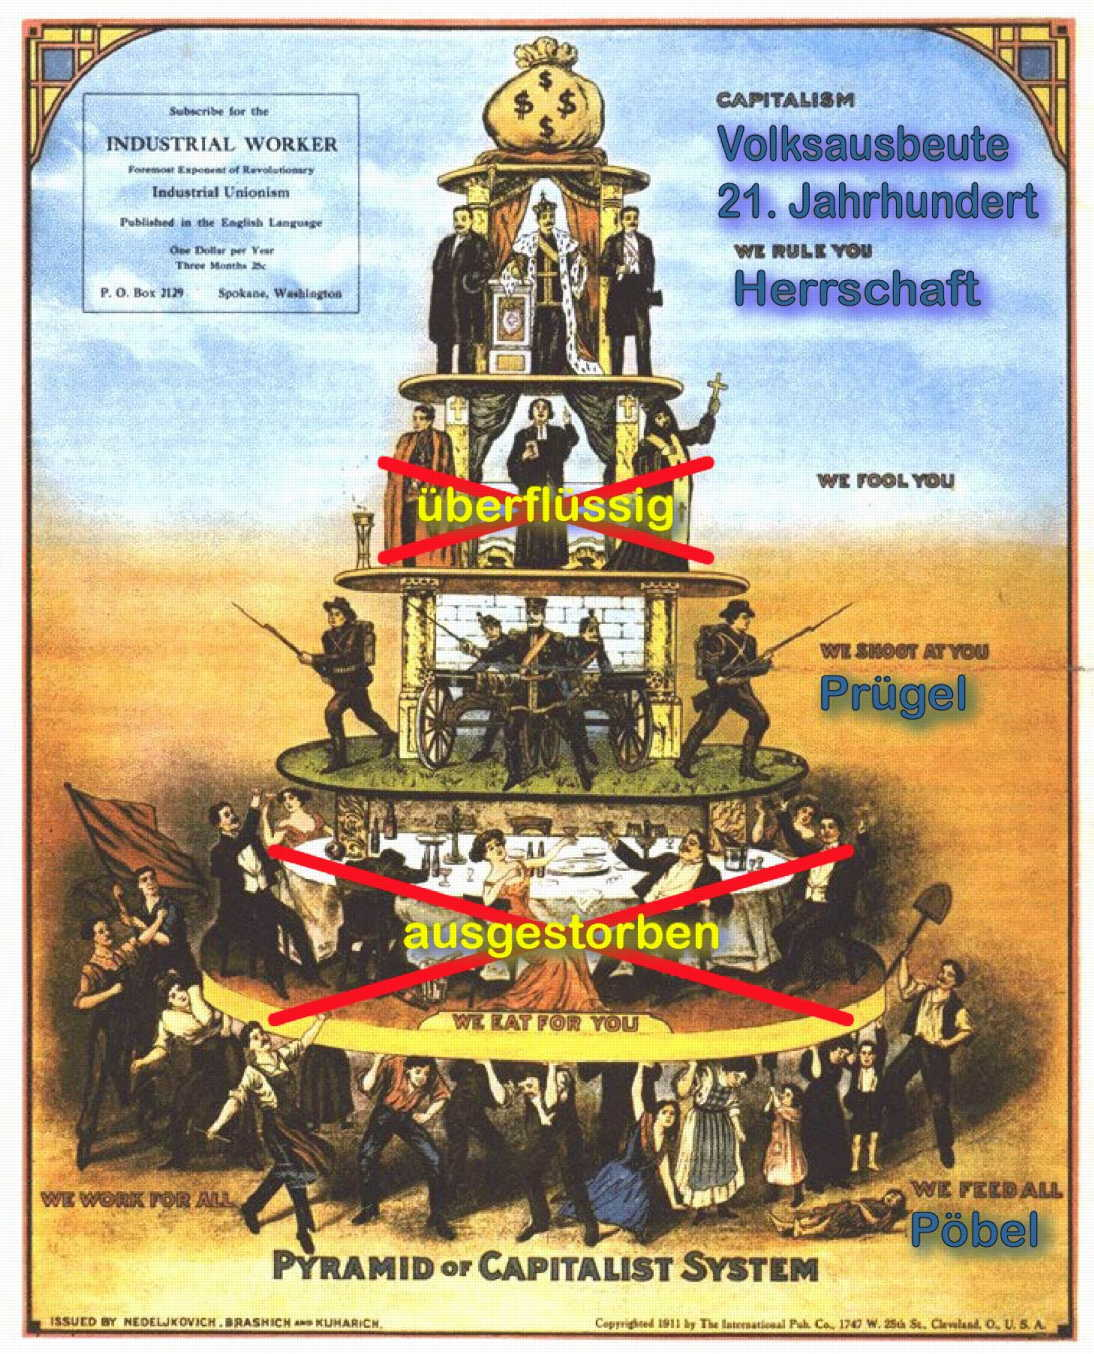 Volksausbeute heute<br><small>Quelle Original: https://secure.wikimedia.org/wikipedia/de/wiki/Datei:Pyramid_of_Capitalist_System.png</small>